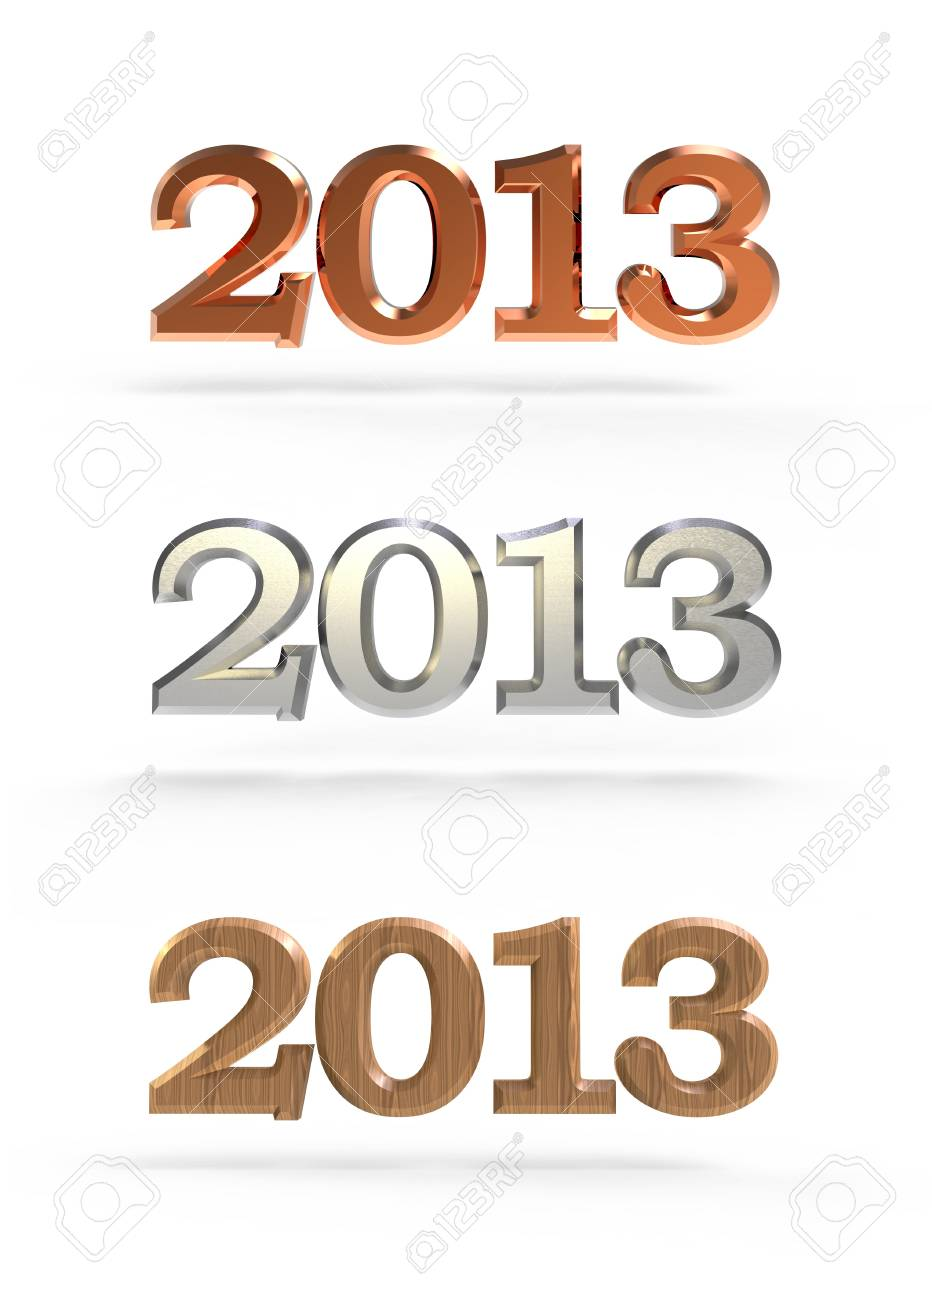 new year 2013 numbers Stock Photo - 15122705